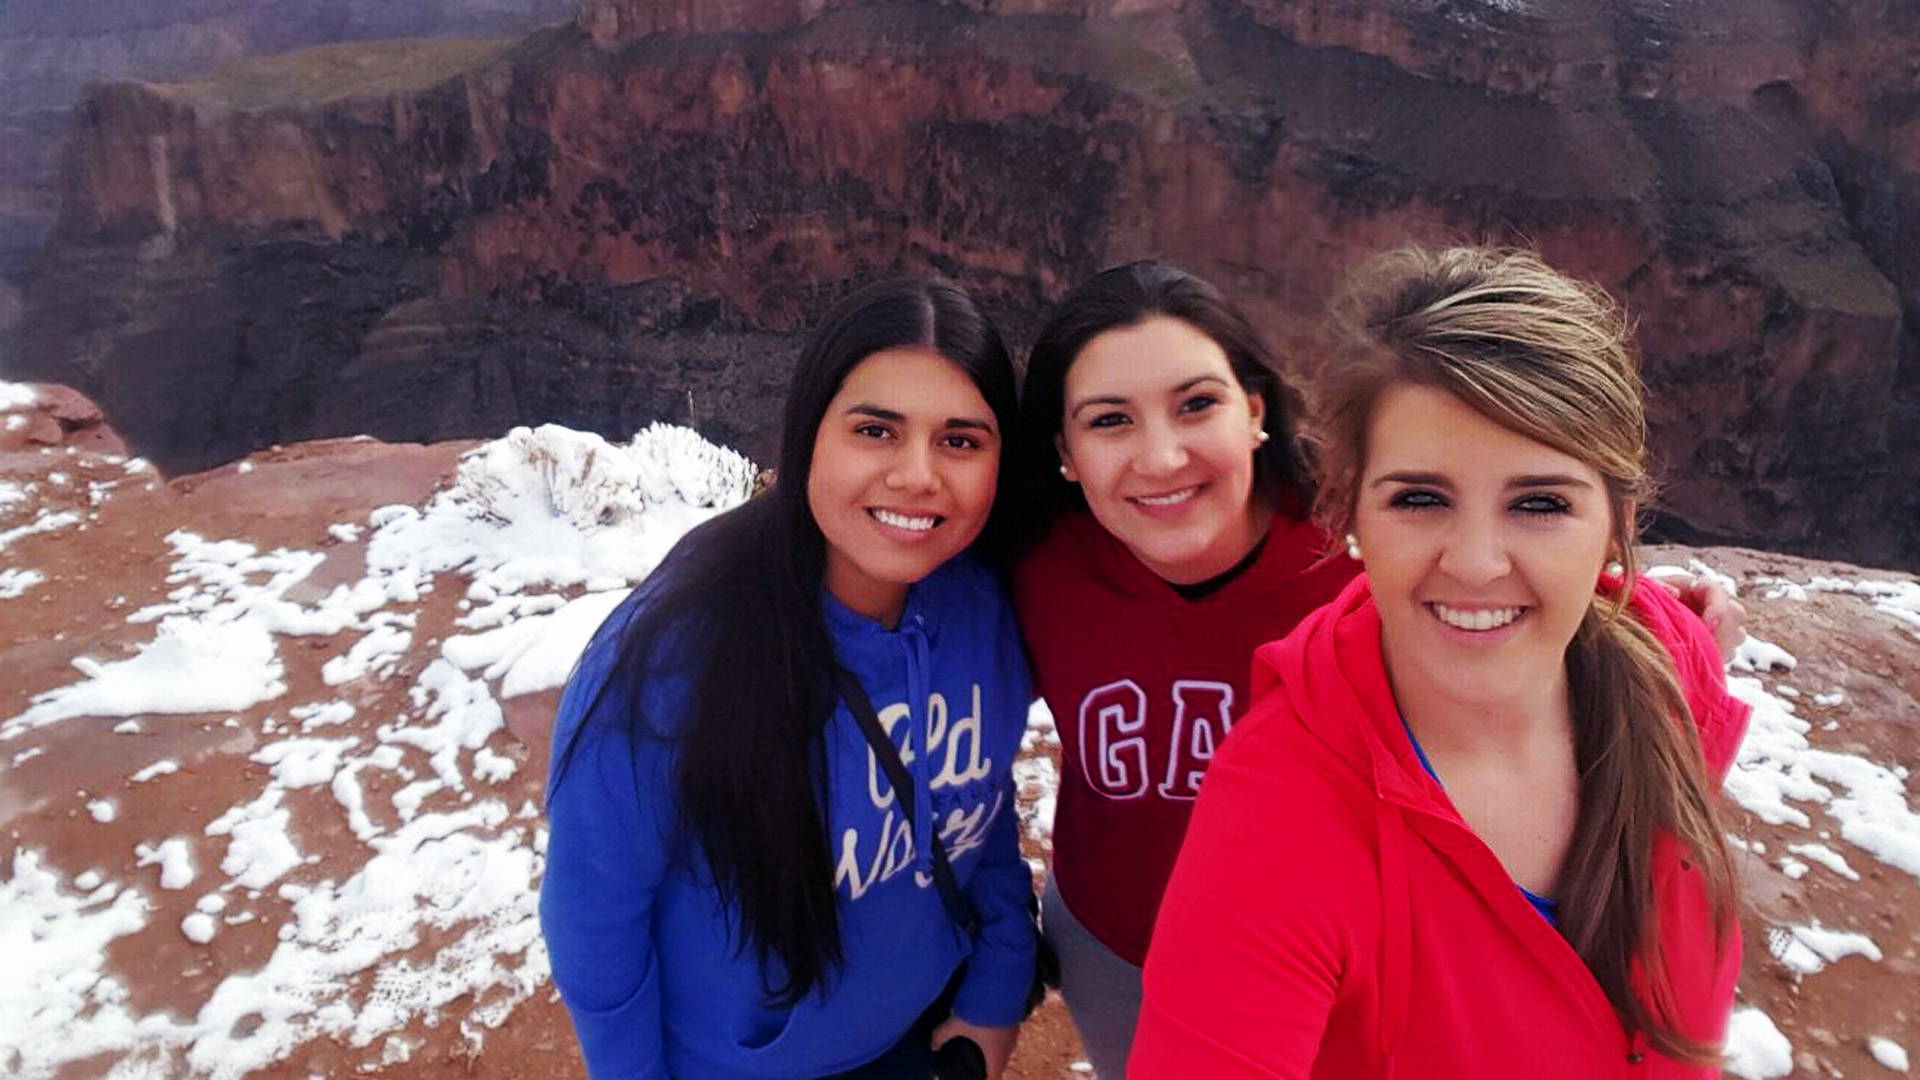 Johanna, Celeste & Daleen at the rim of the Grand Canyon with snow on the ground